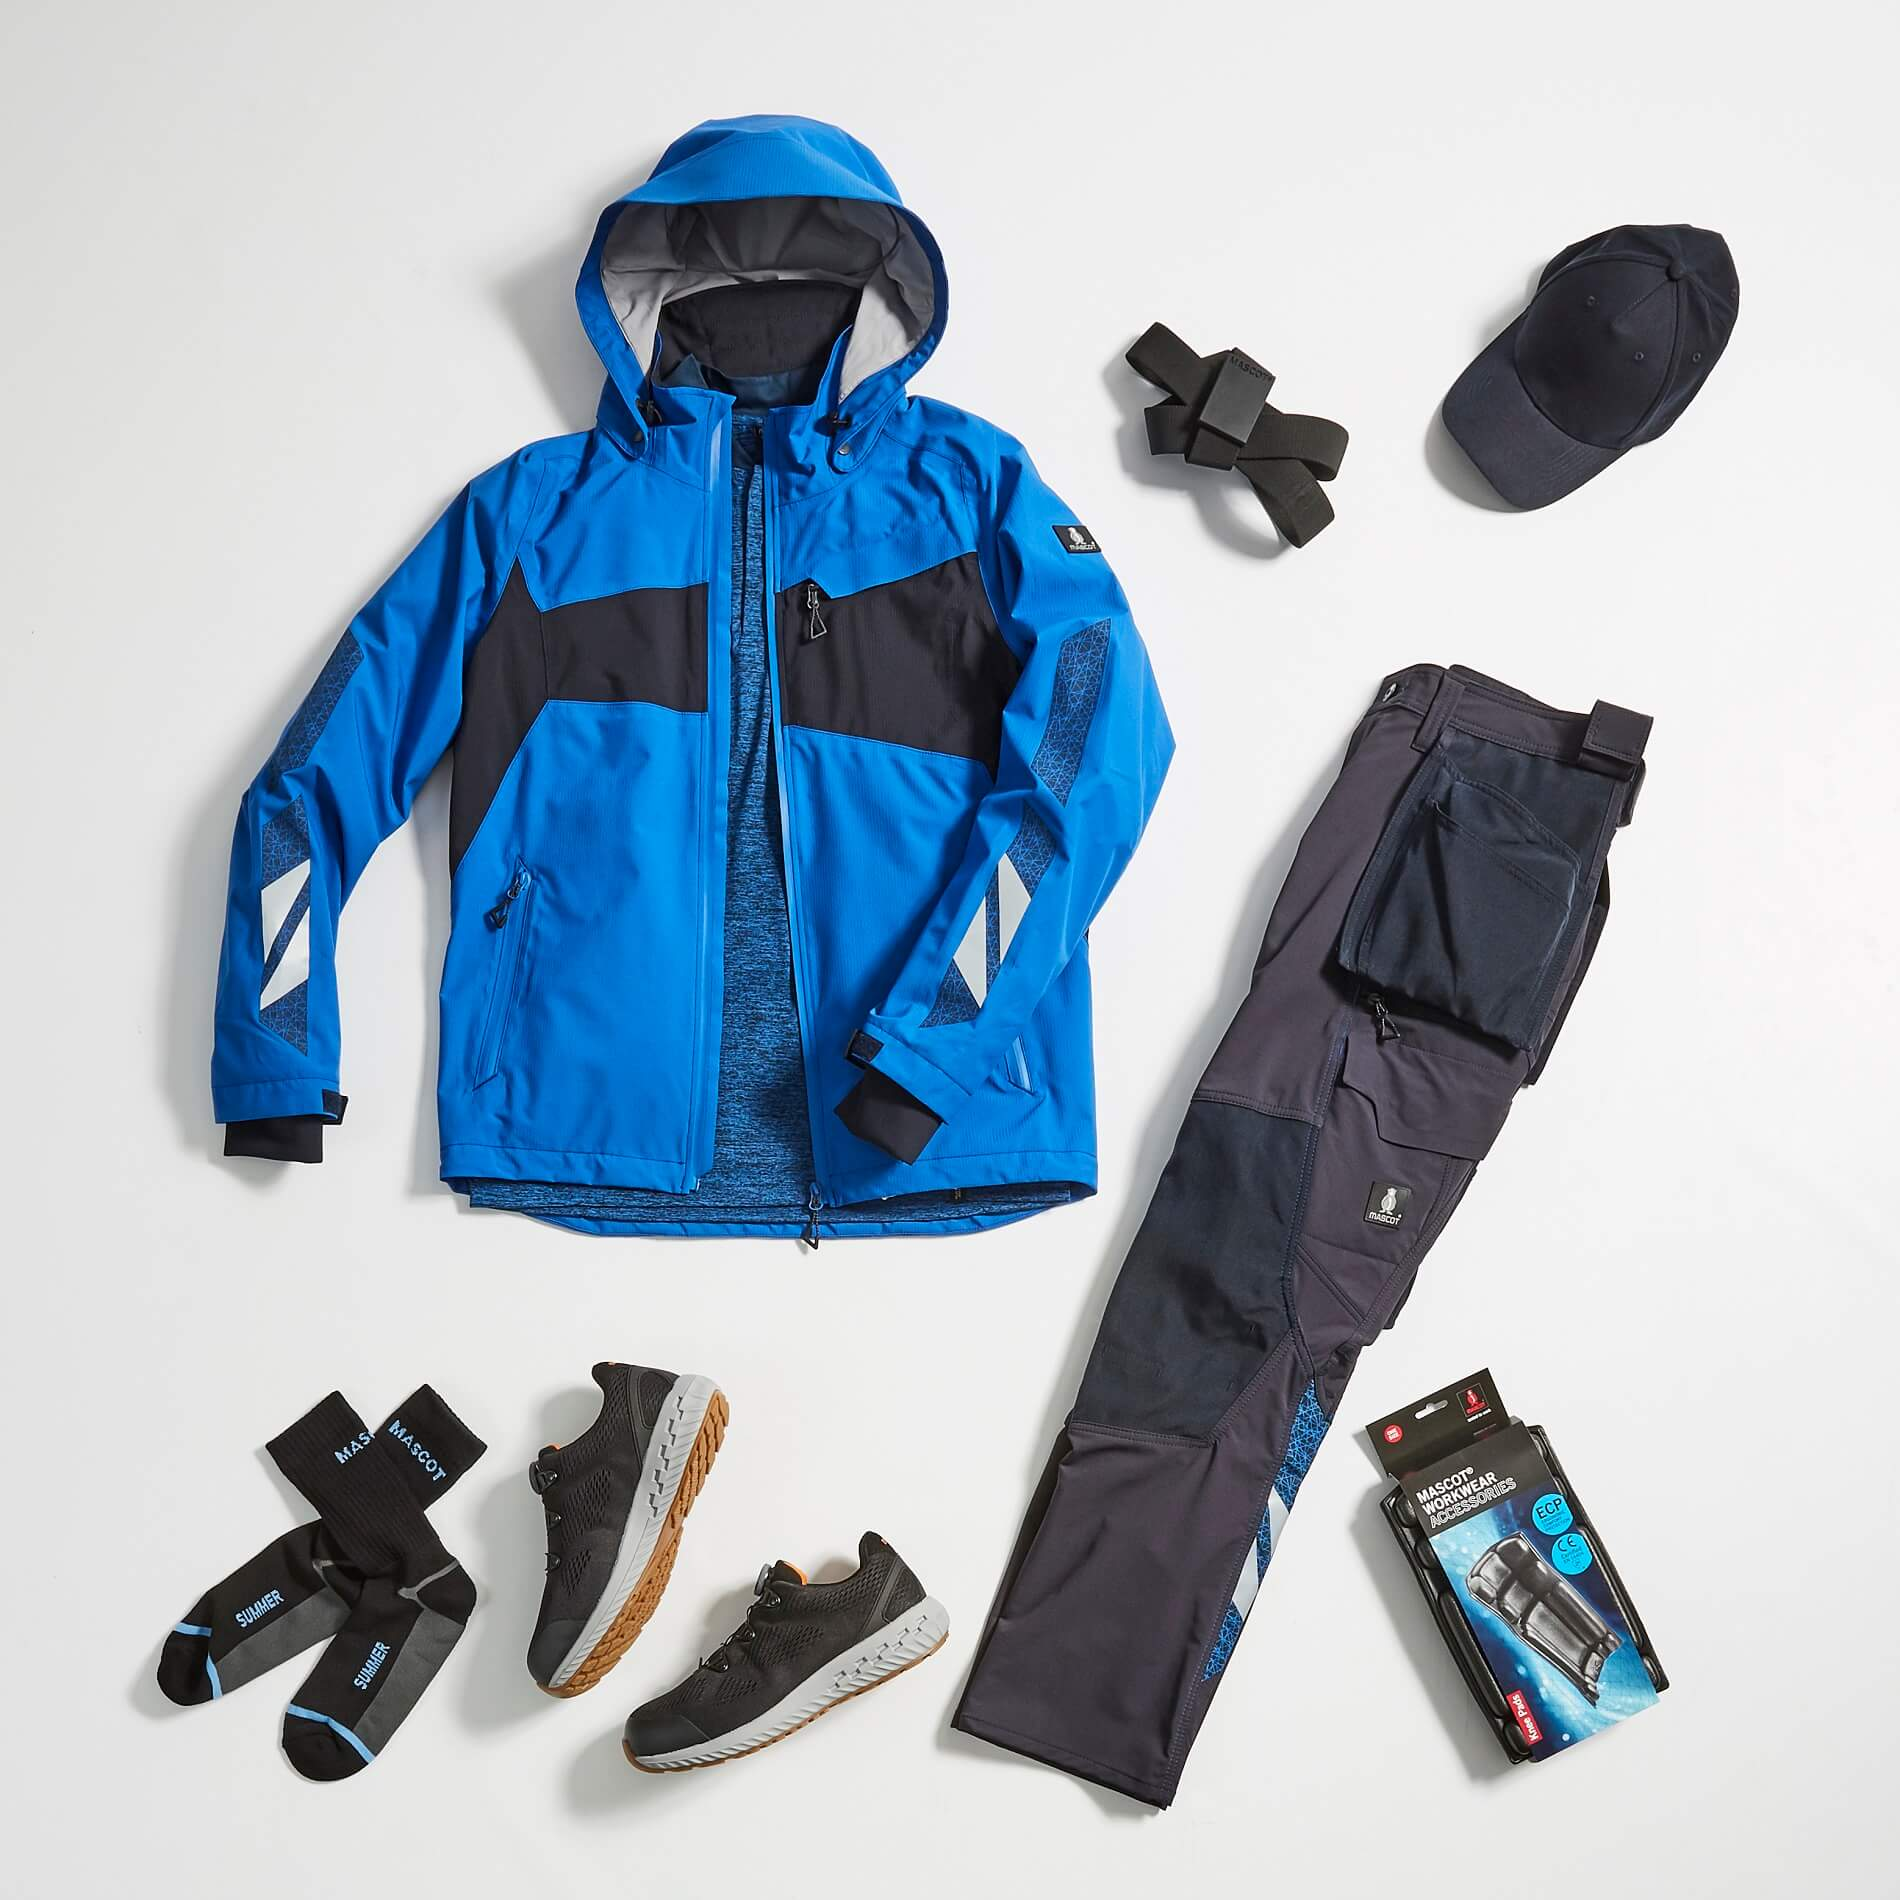 MASCOT® ACCELERATE - Work Trousers, Jacket & Accessories - Collage